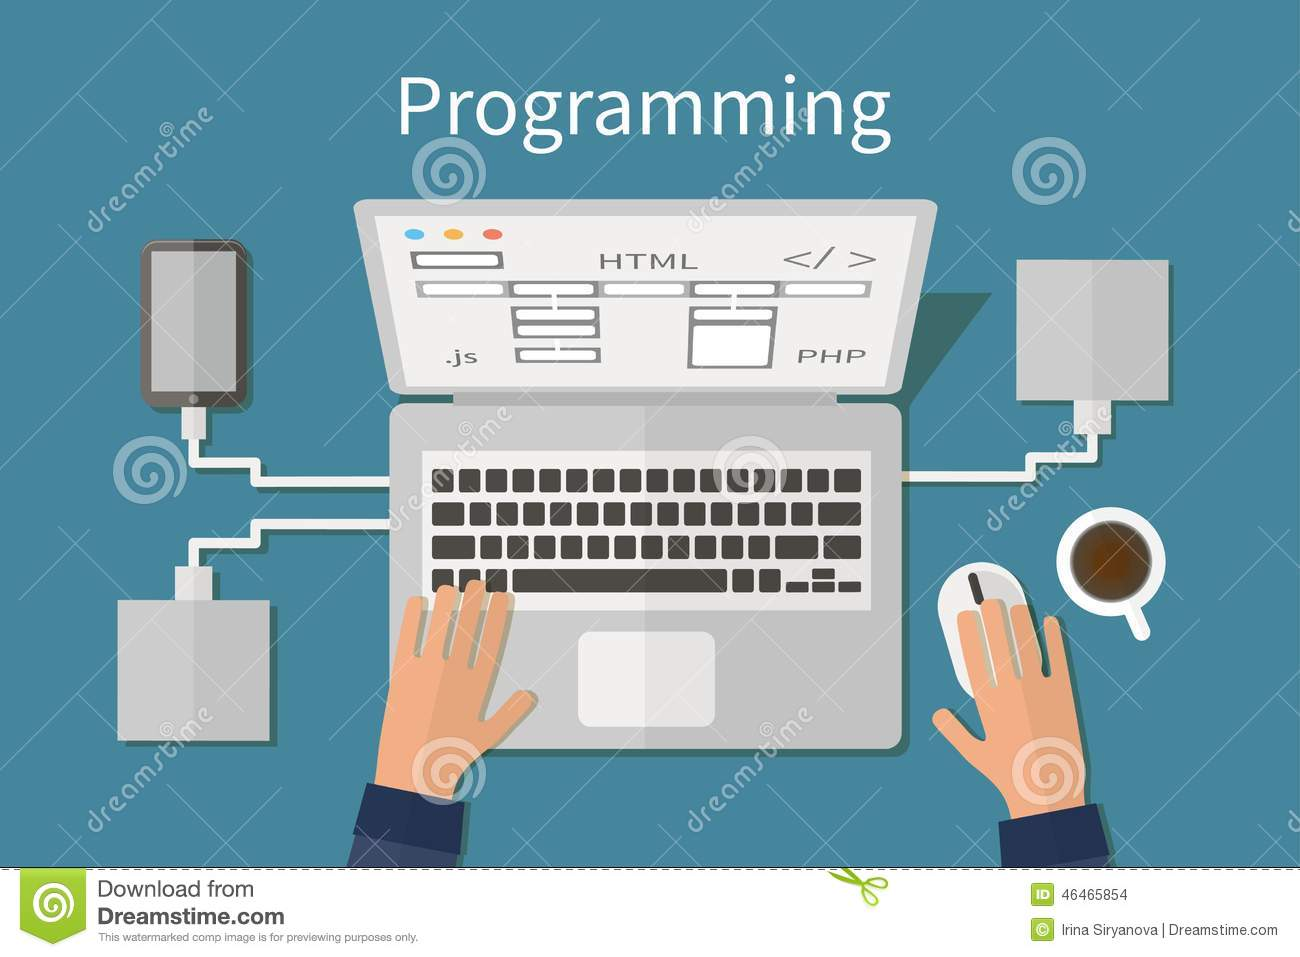 Programming and coding, website deveopment, web